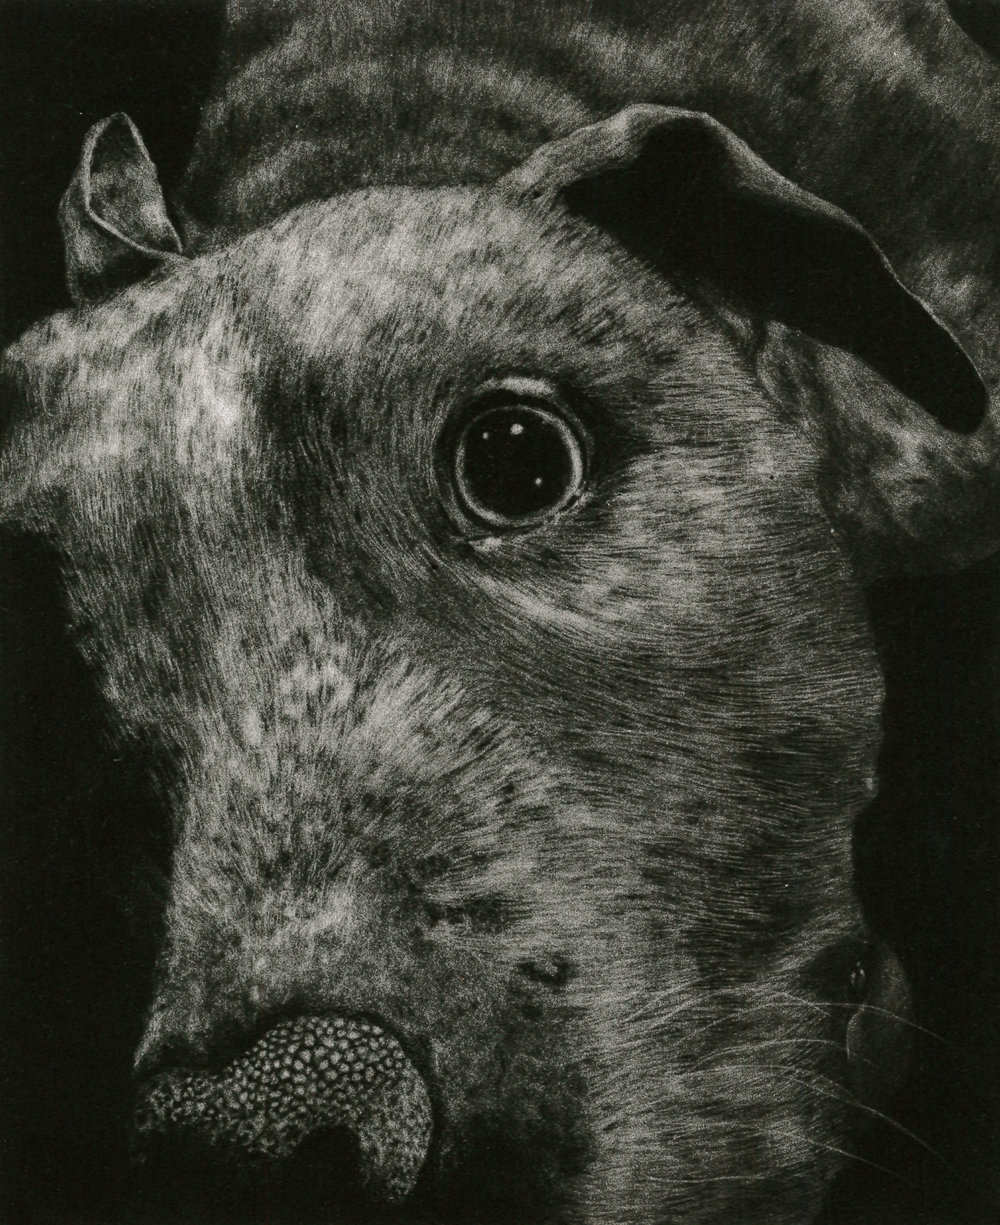 'Portrait of a Pit Bull', Mezzotint by Kirsten Flaherty